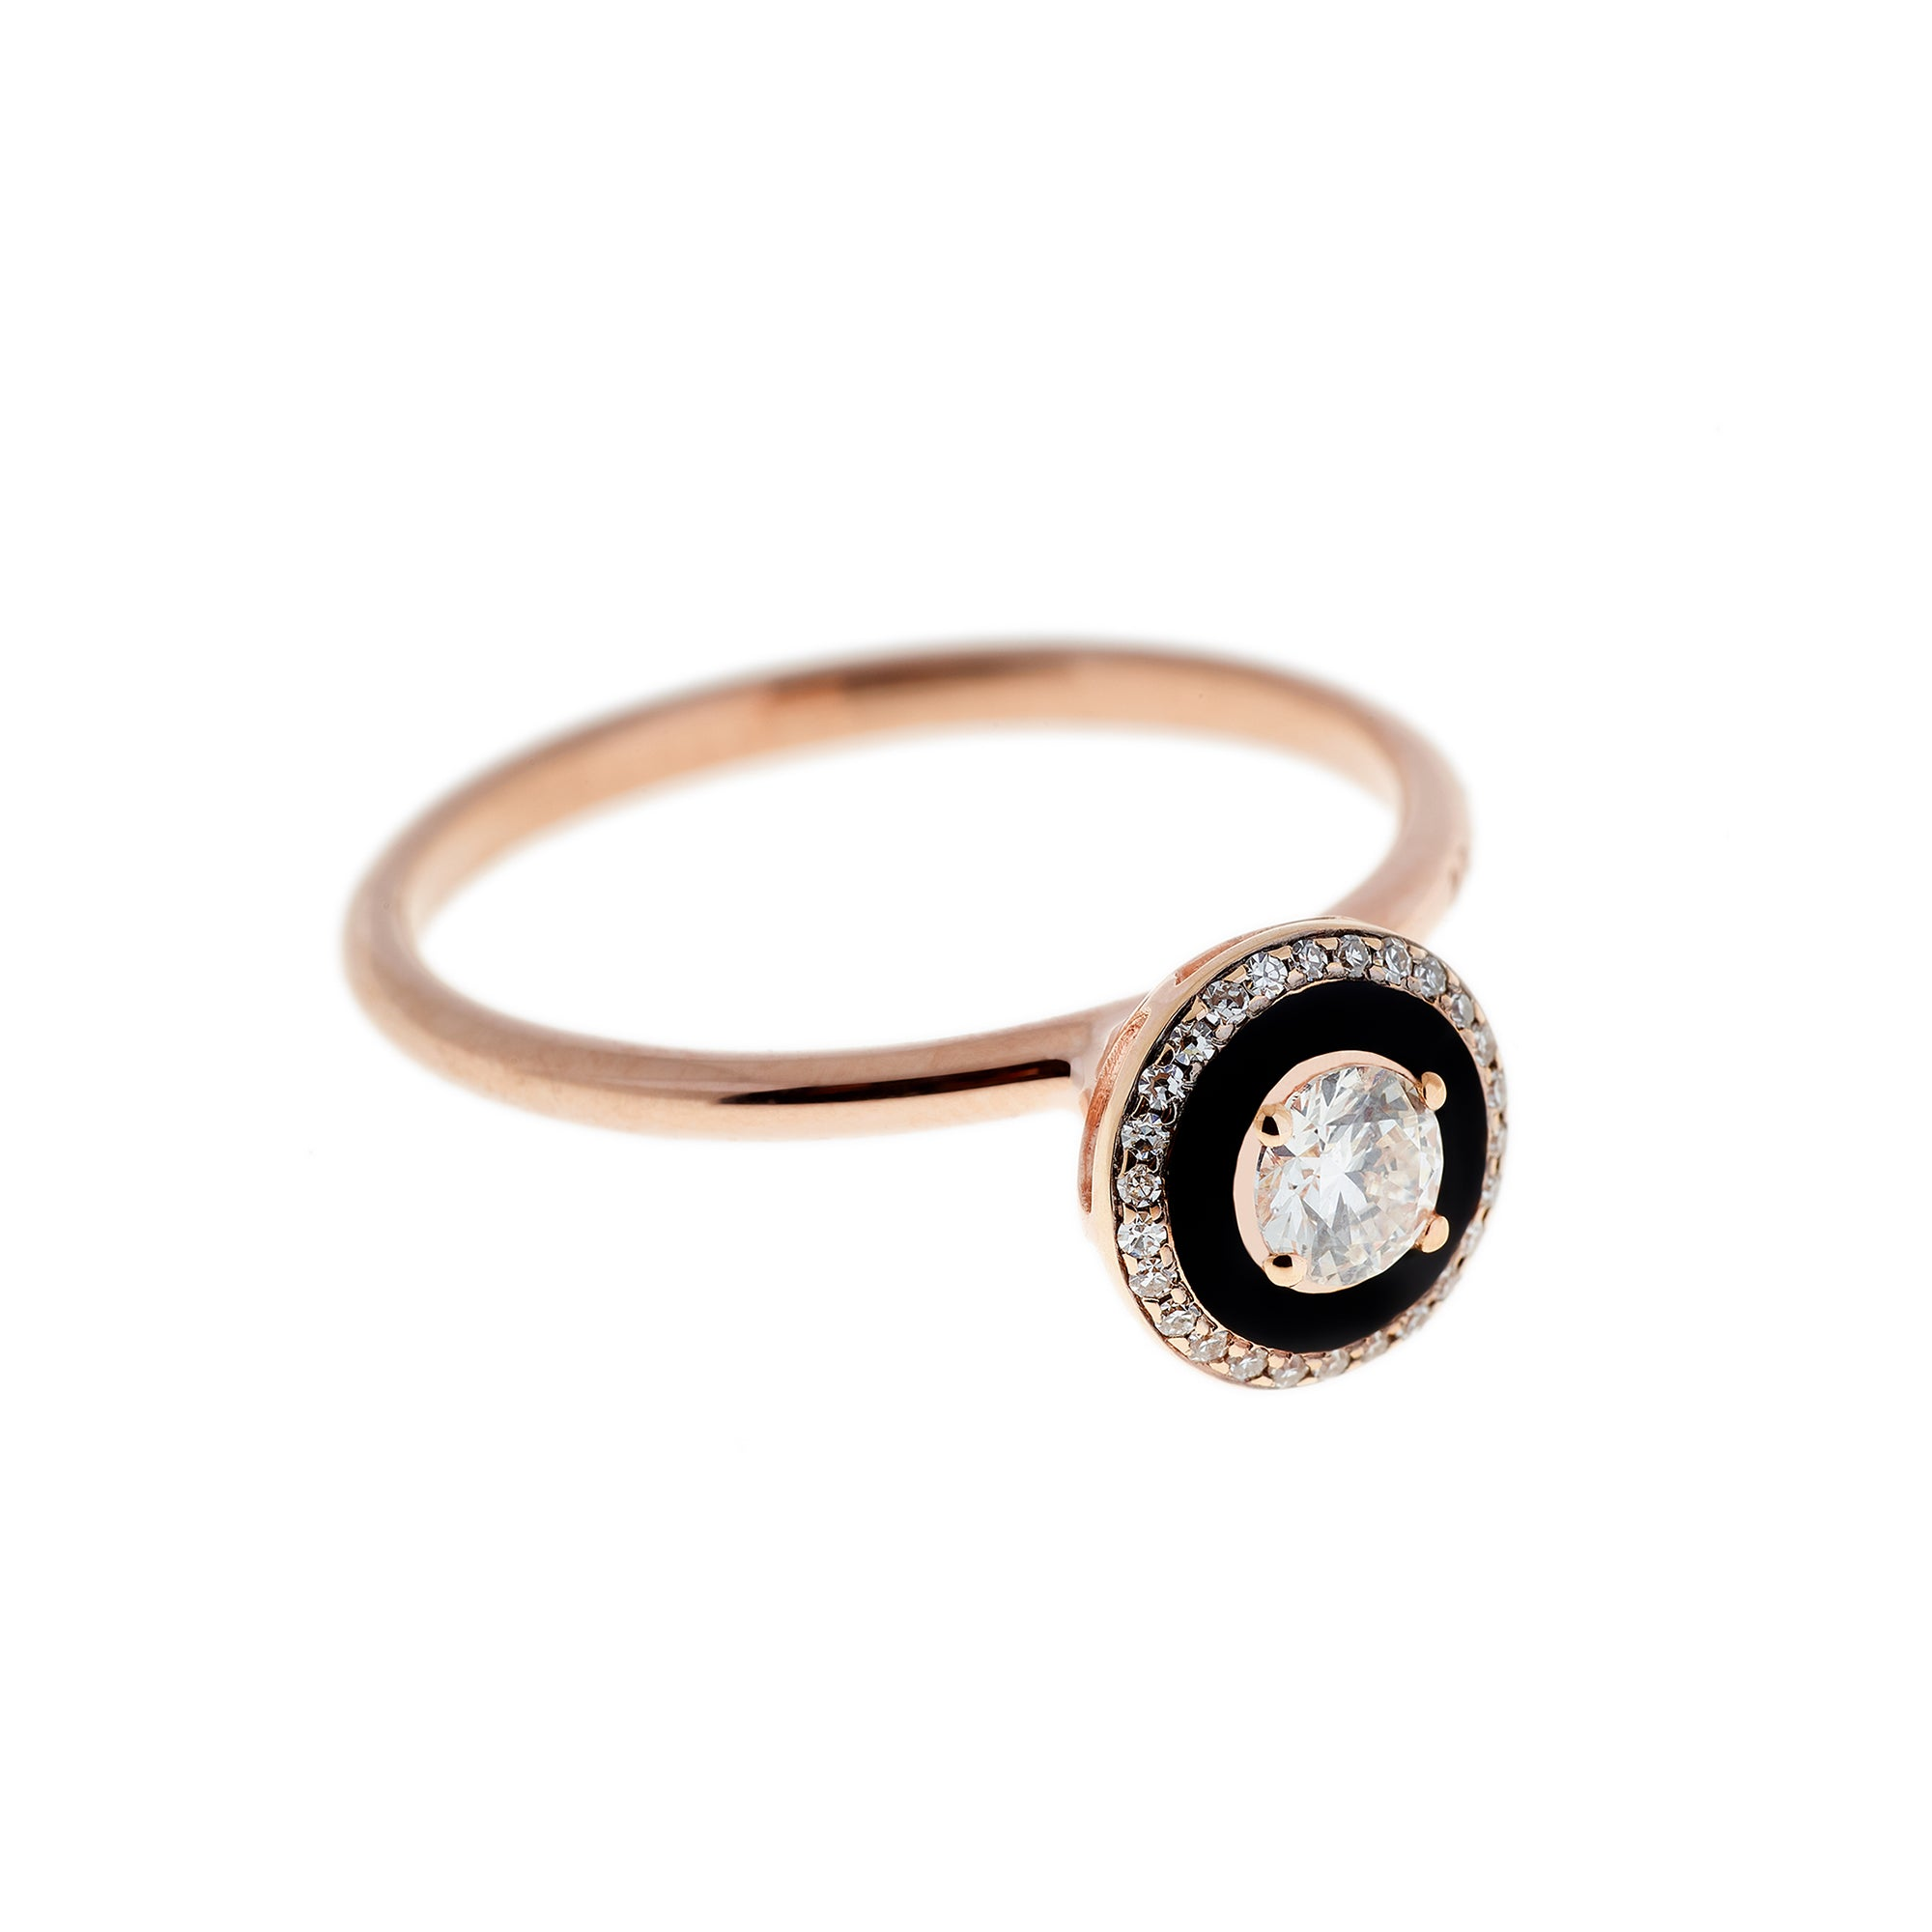 Diamond and Black Enamel Ring by Selim Mouzannar for Broken English Jewelry